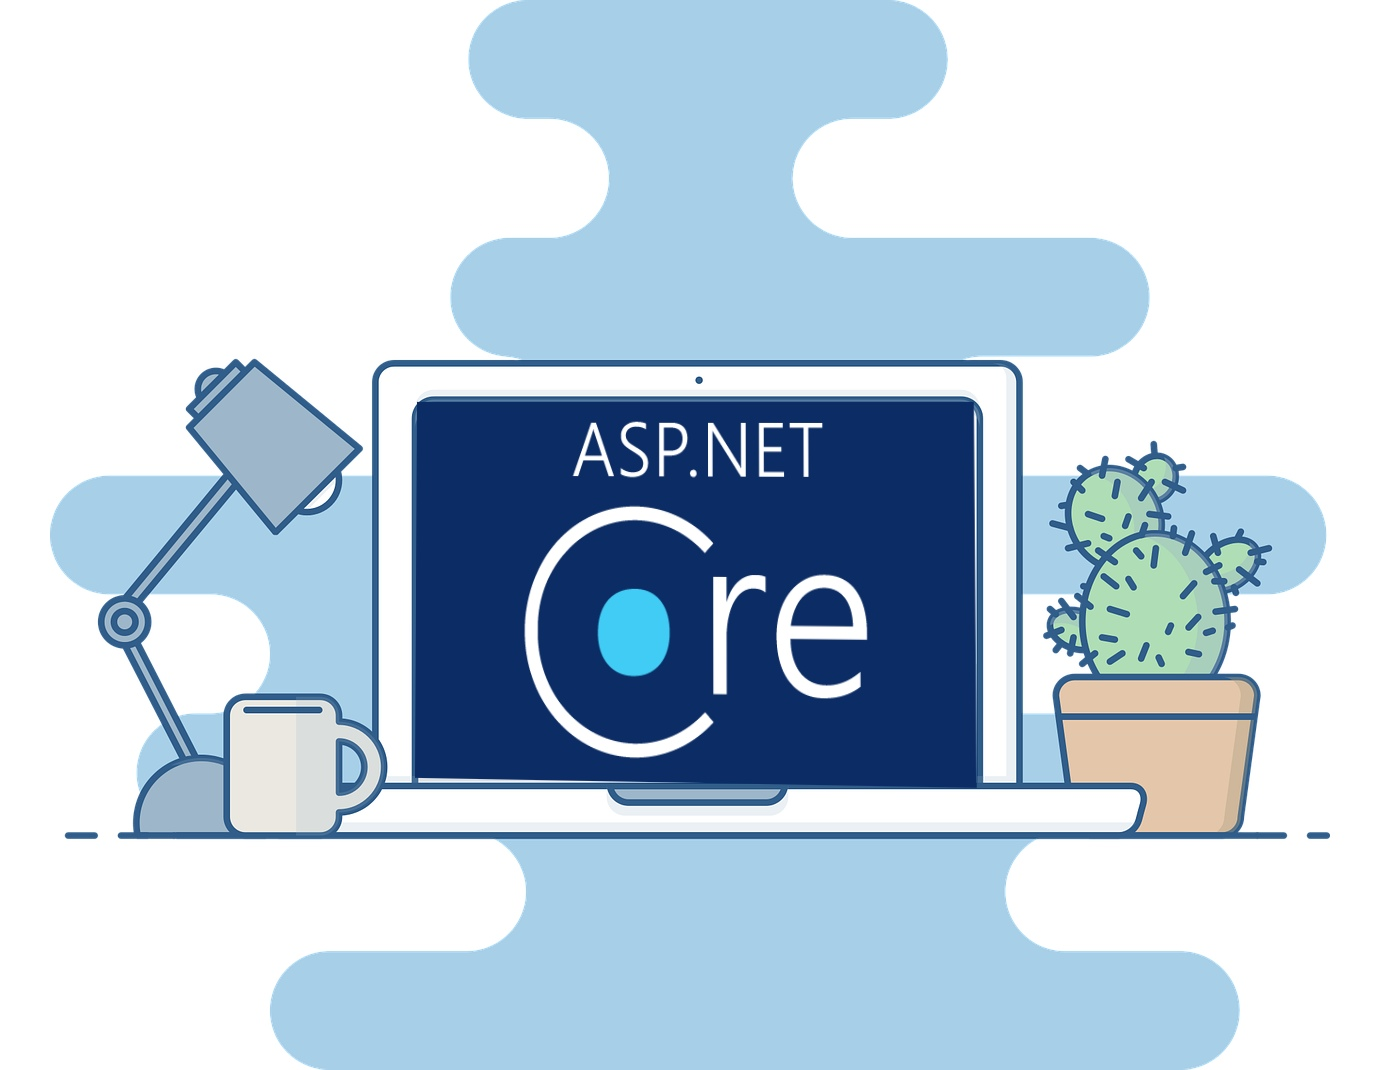 Implementation of Crud Operation and File Management in ASP.NET Core